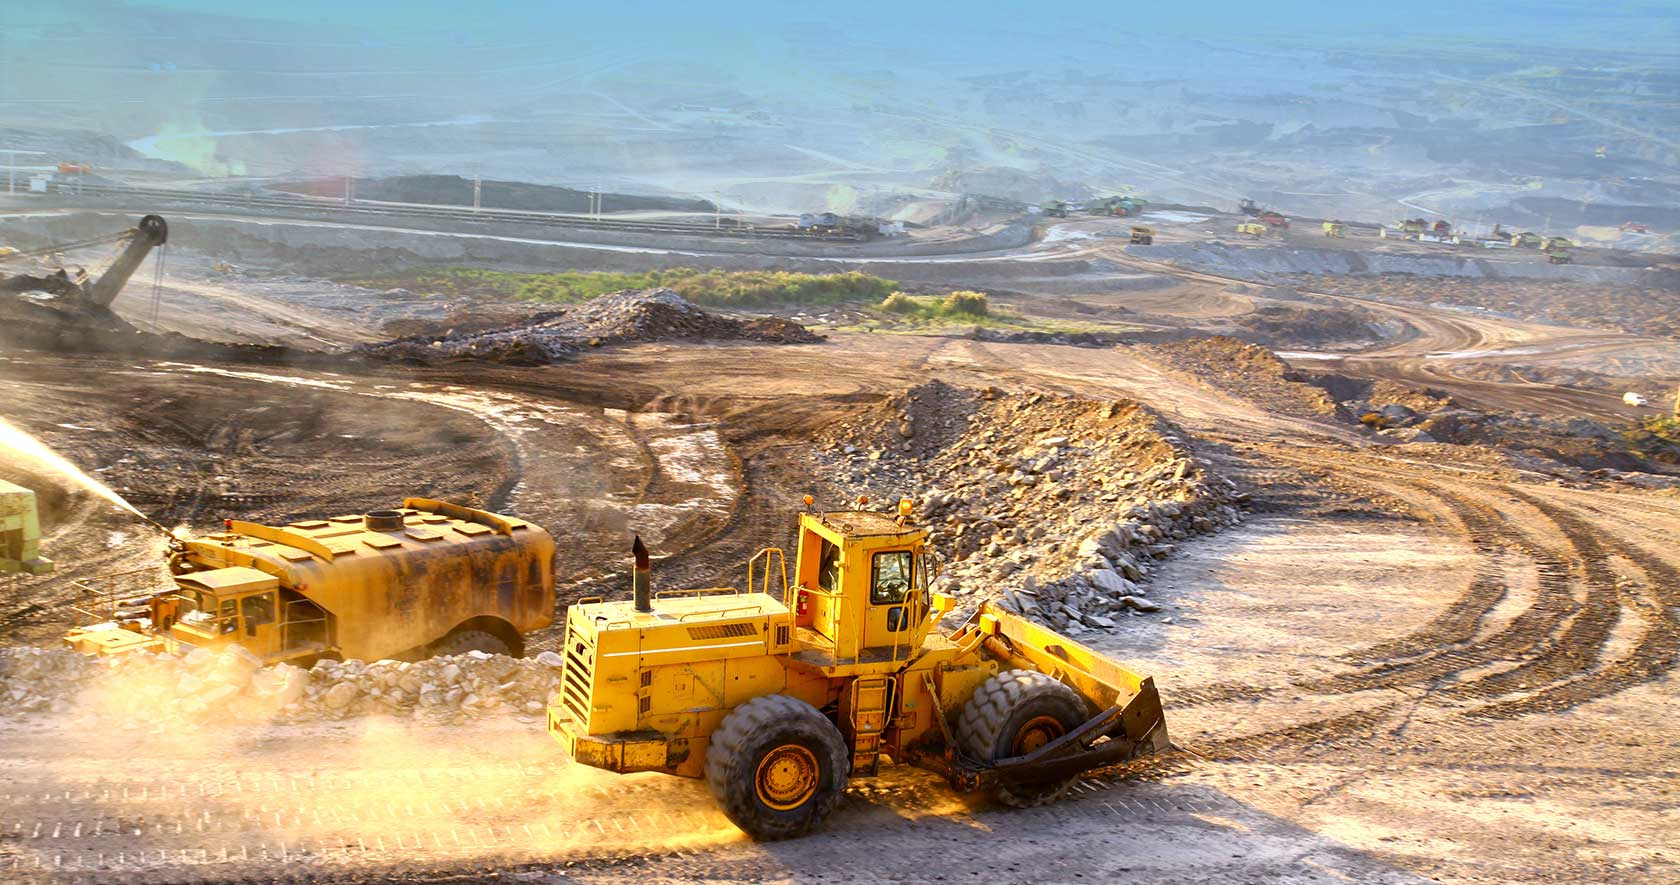 acme minerals extraction company management essay The case of acme mineral extraction company helps in identifying the management approach and the leadership styles that lead to the success of the project based work teams in a particular situation.